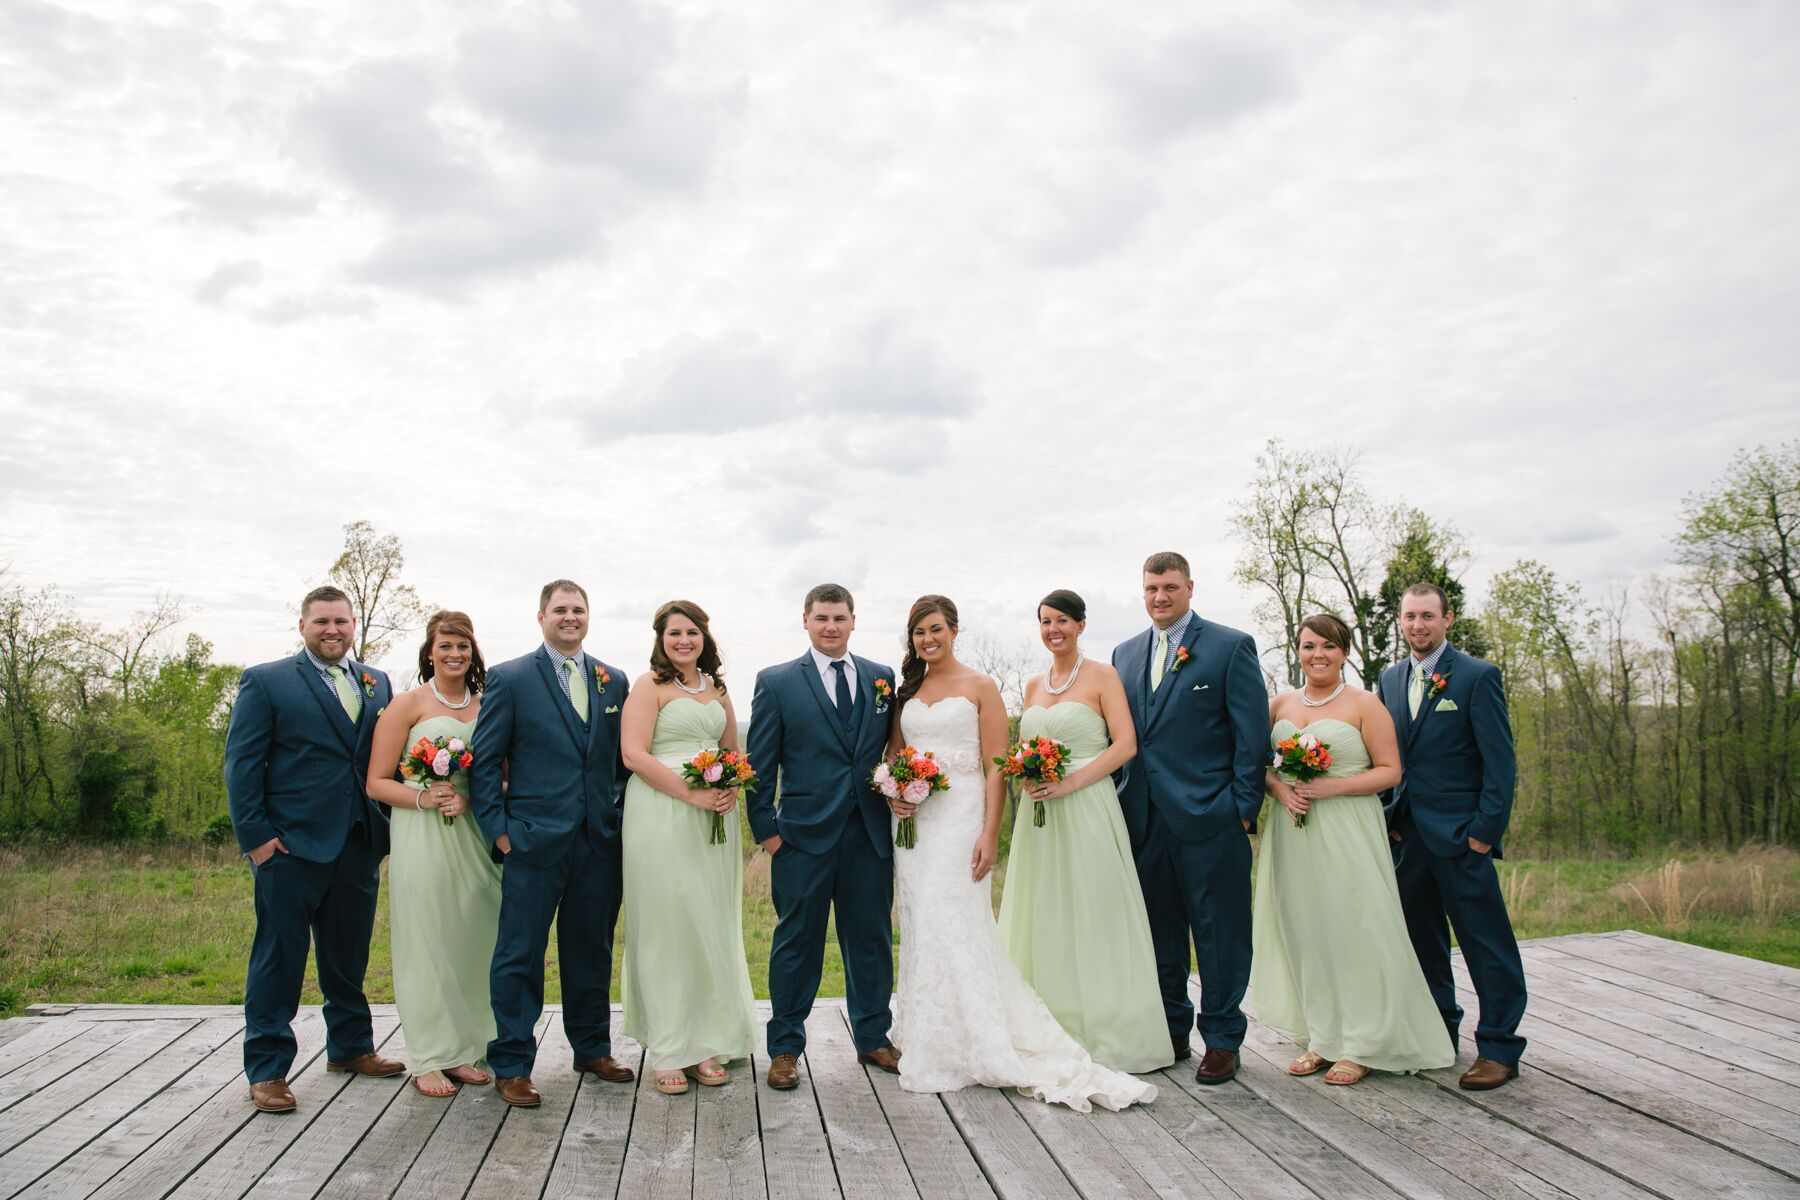 A Country-Chic Wedding at Burdoc Farms in Crofton, Kentucky